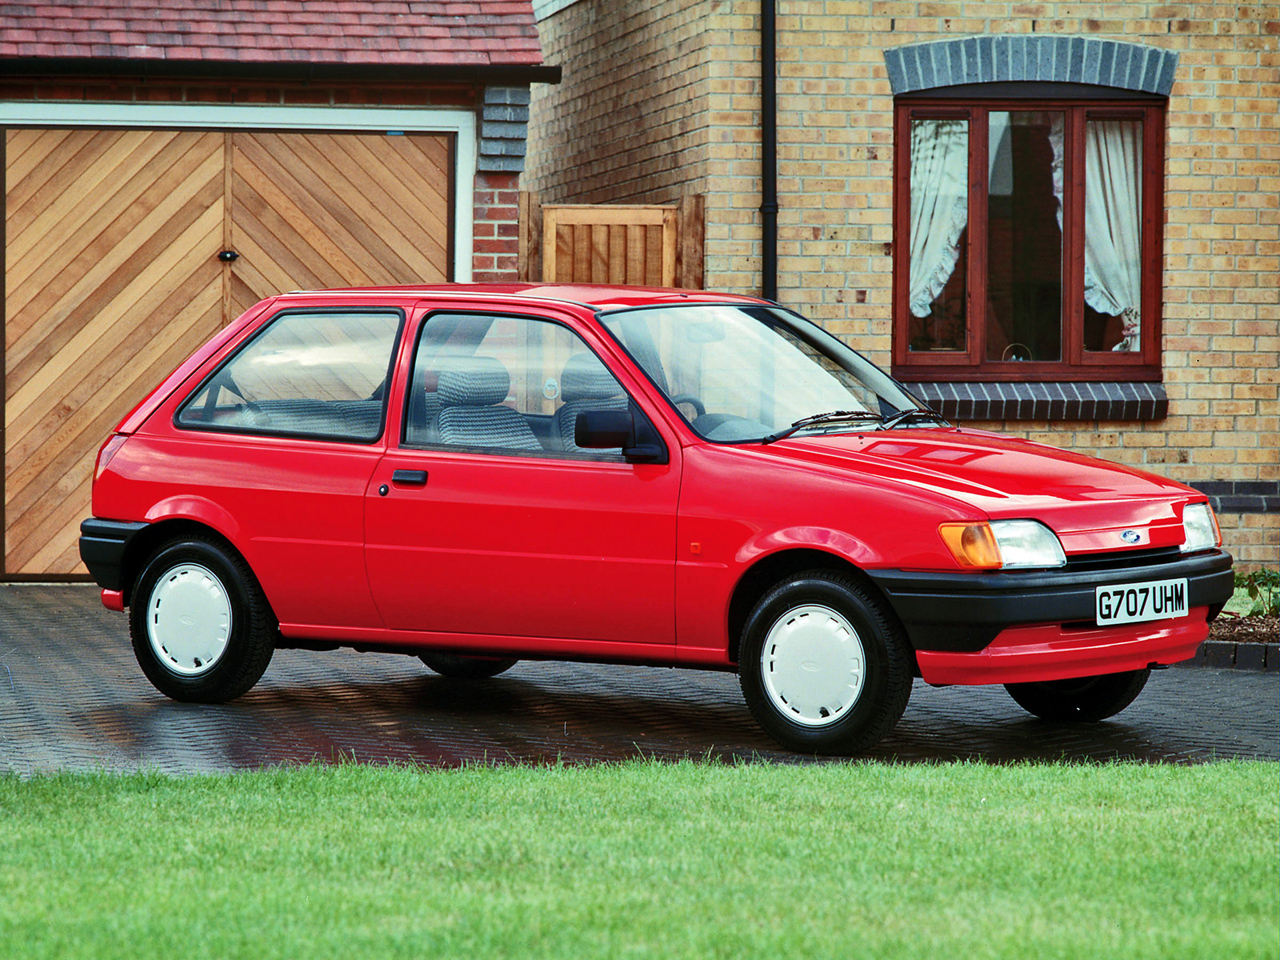 Ford fiesta 1988 photo - 9